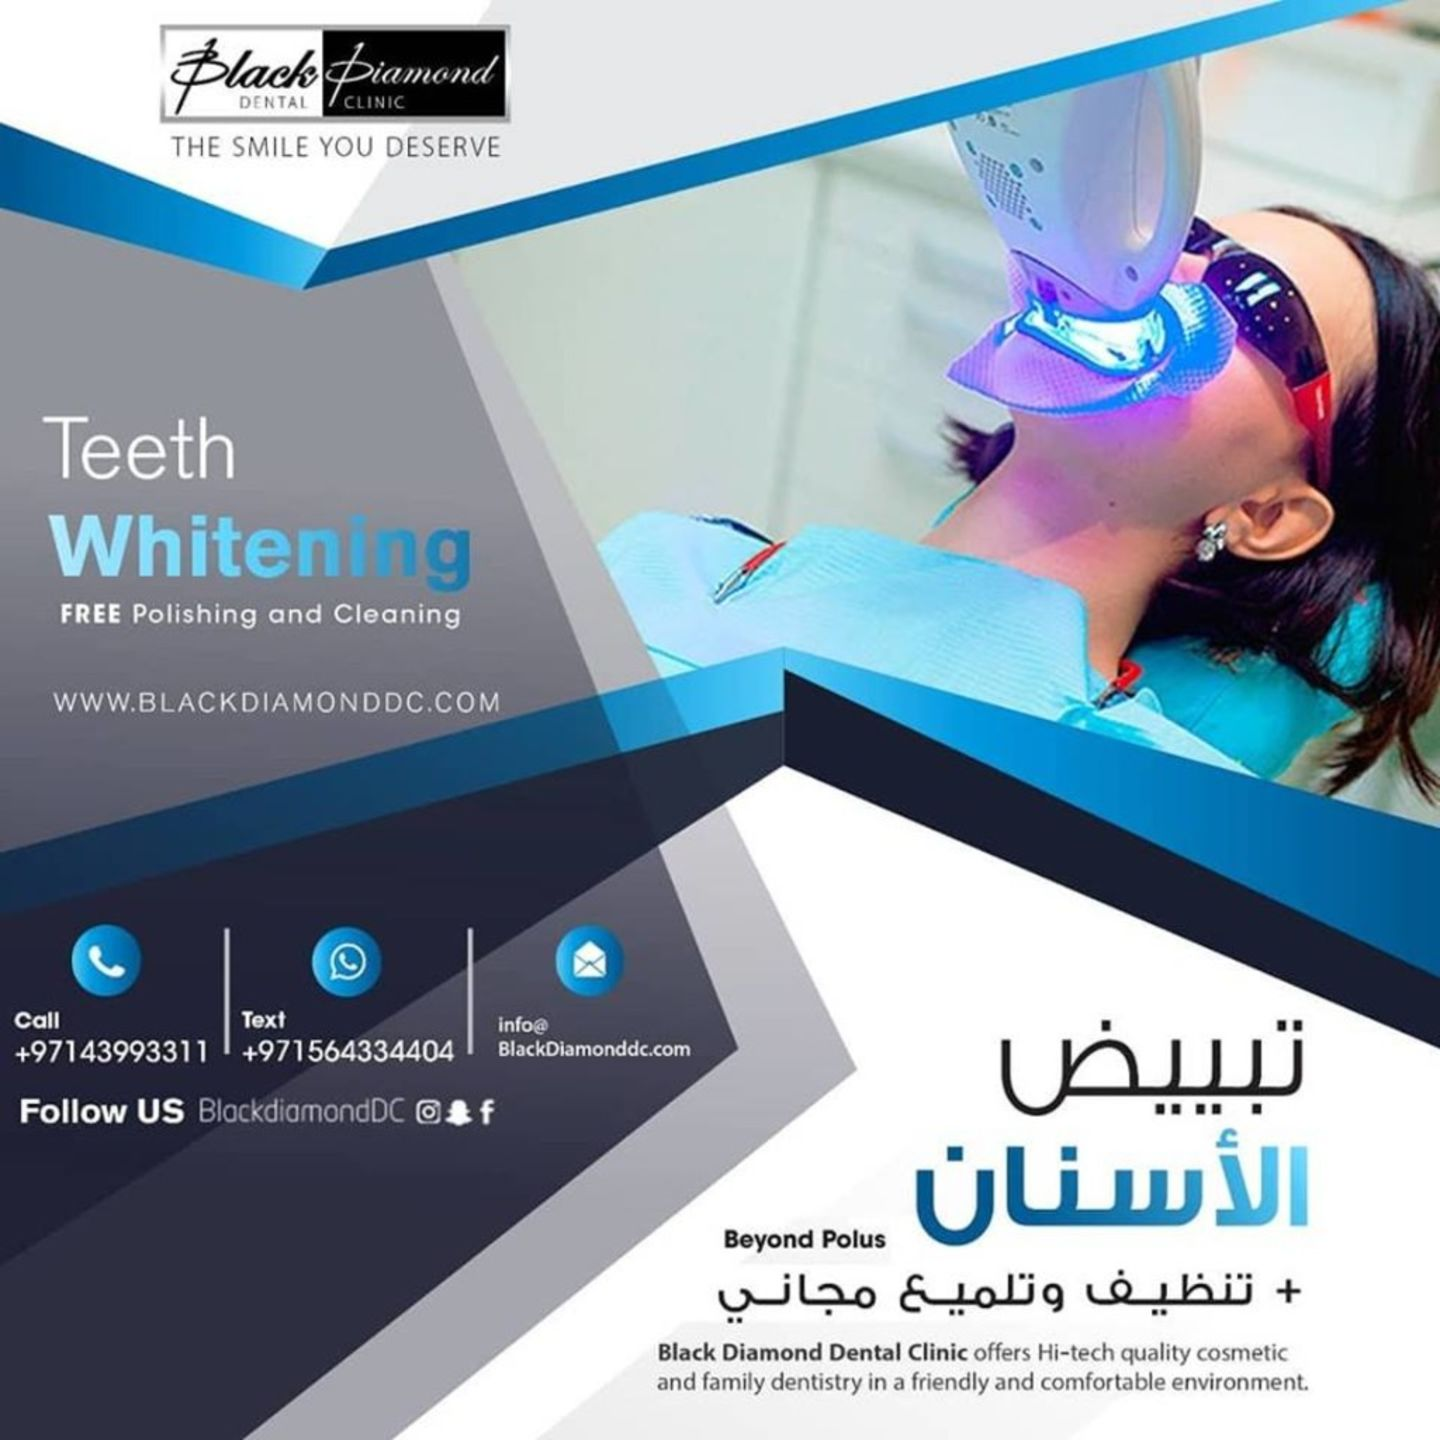 HiDubai-business-black-diamond-dental-clinic-beauty-wellness-health-specialty-clinics-dubai-internet-city-al-sufouh-2-dubai